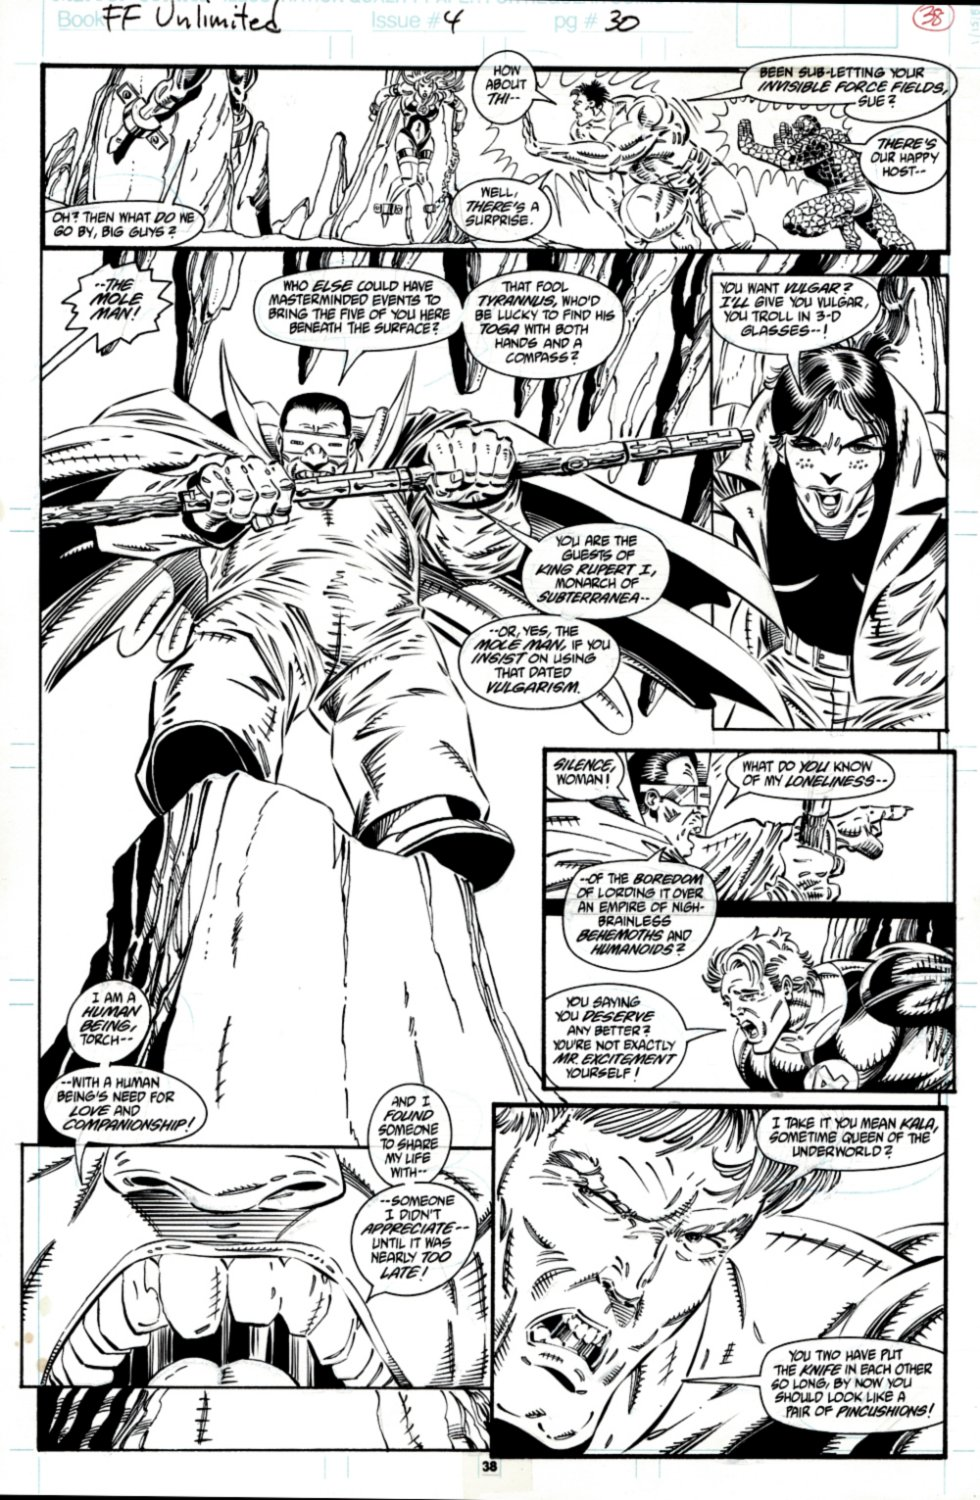 Fantastic Four Unlimited #4 p 38 (SOLD LIVE ON THE ROMITAMAN ART DROP PODCAST ON 10-9-2021